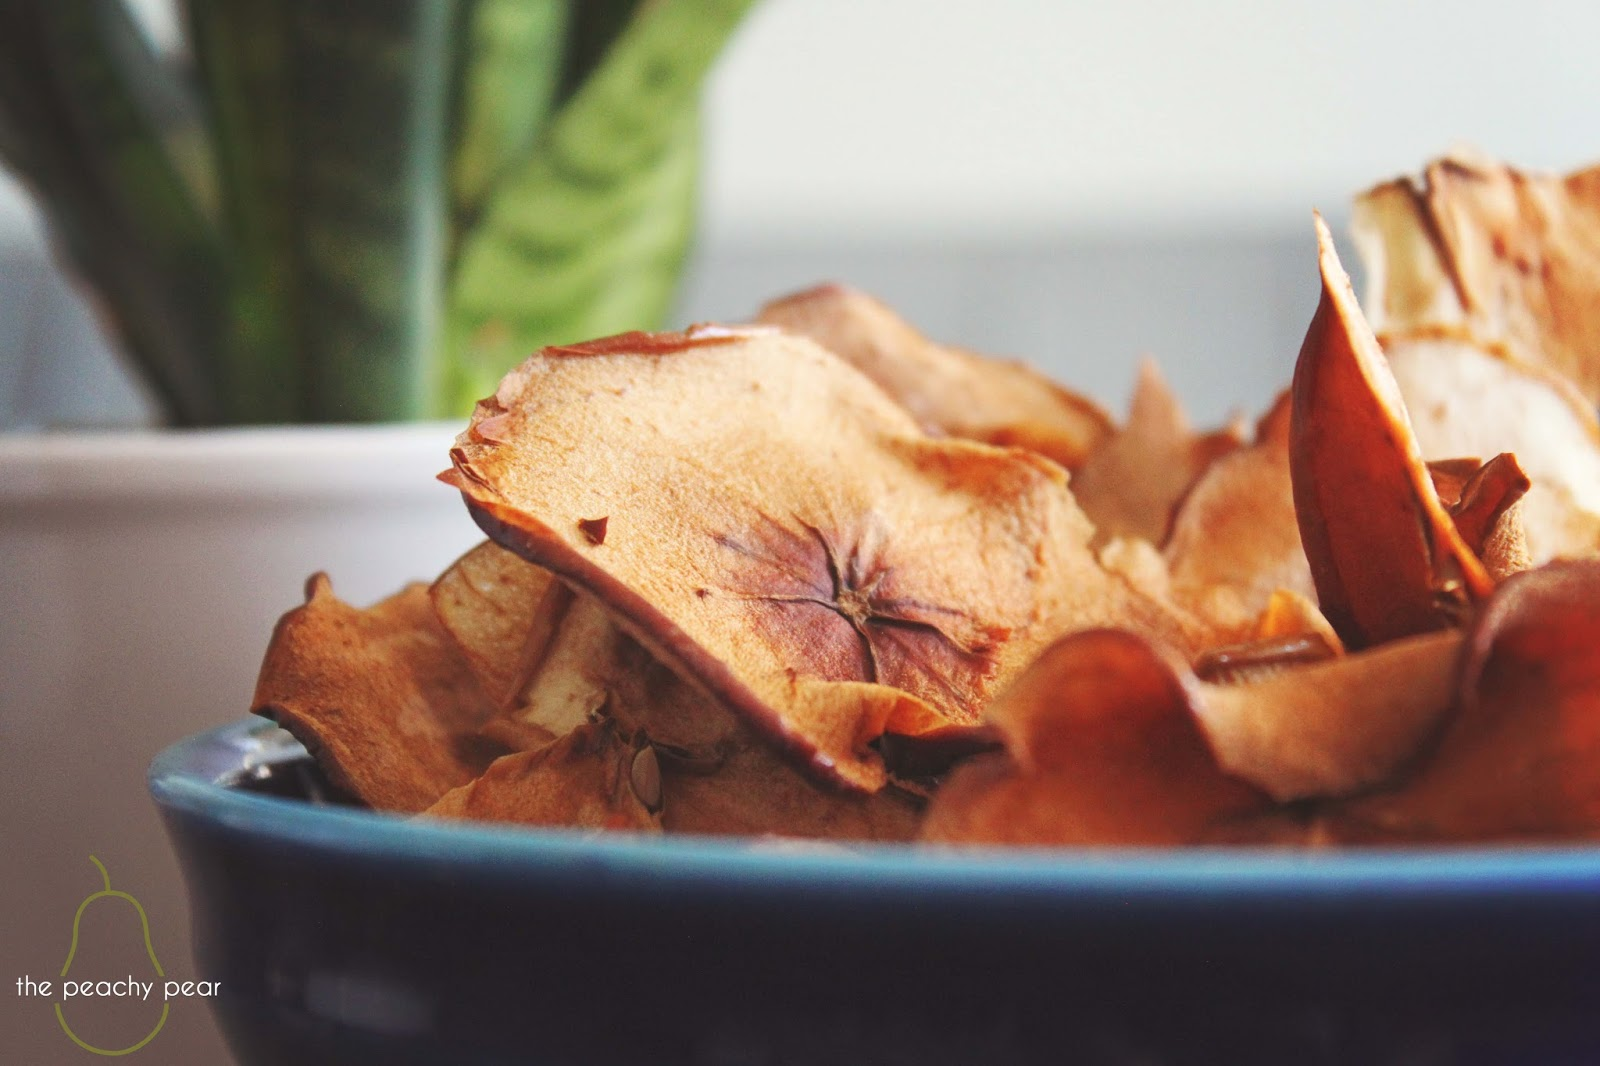 the peachy pear: Oven baked apple chips